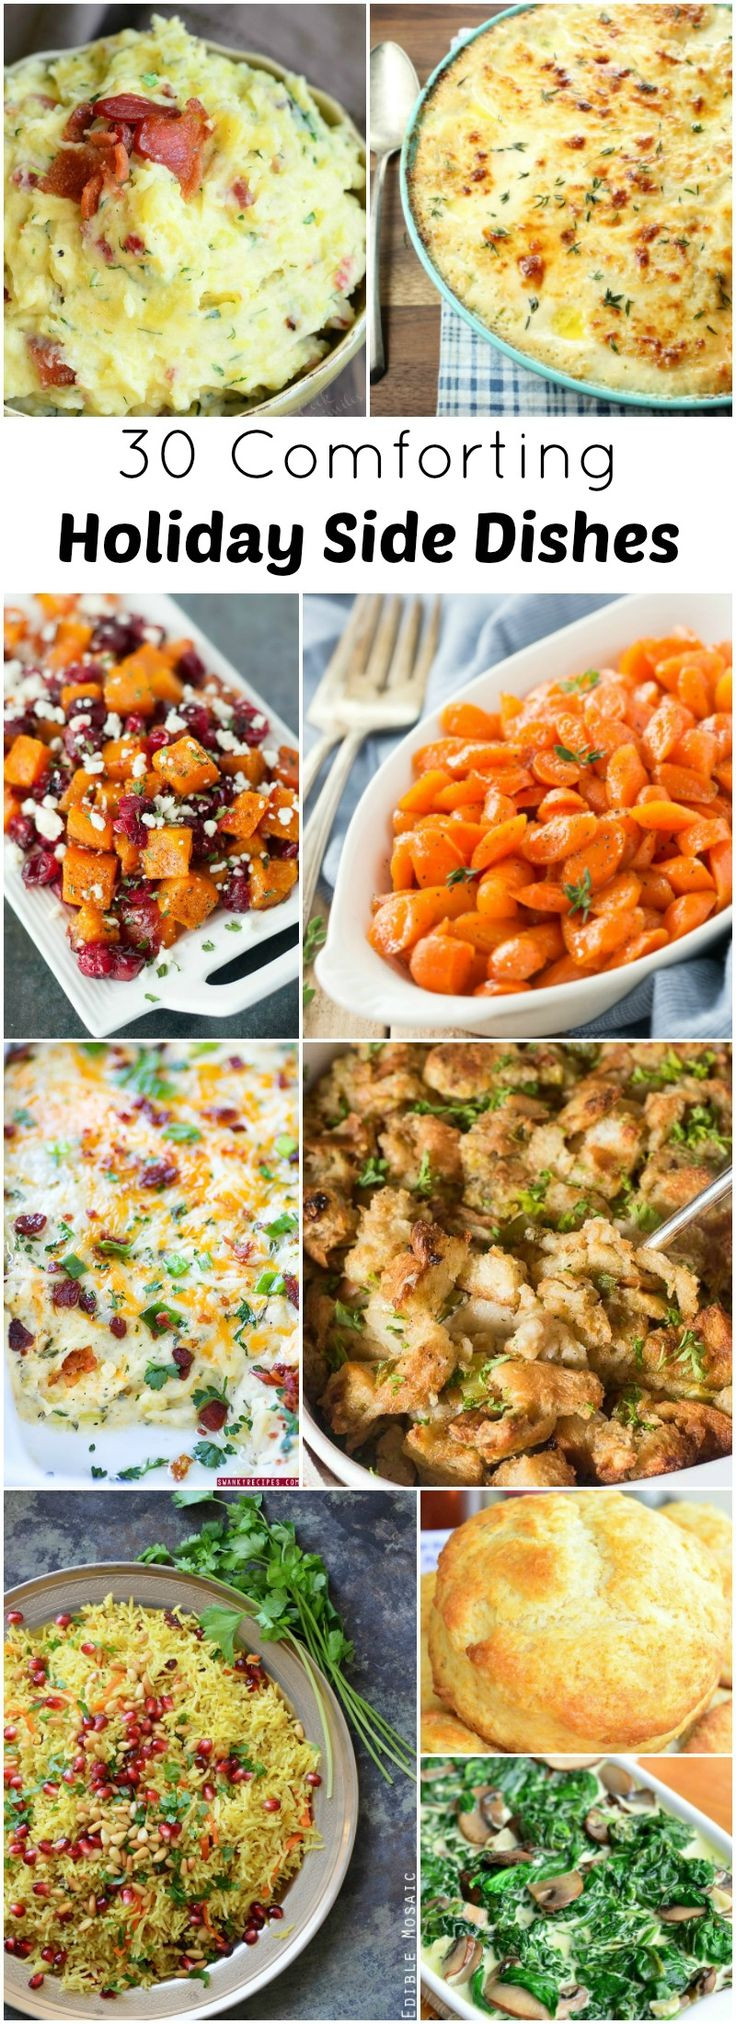 Christmas Dinner Side Dishes  17 Best ideas about Holiday Side Dishes on Pinterest